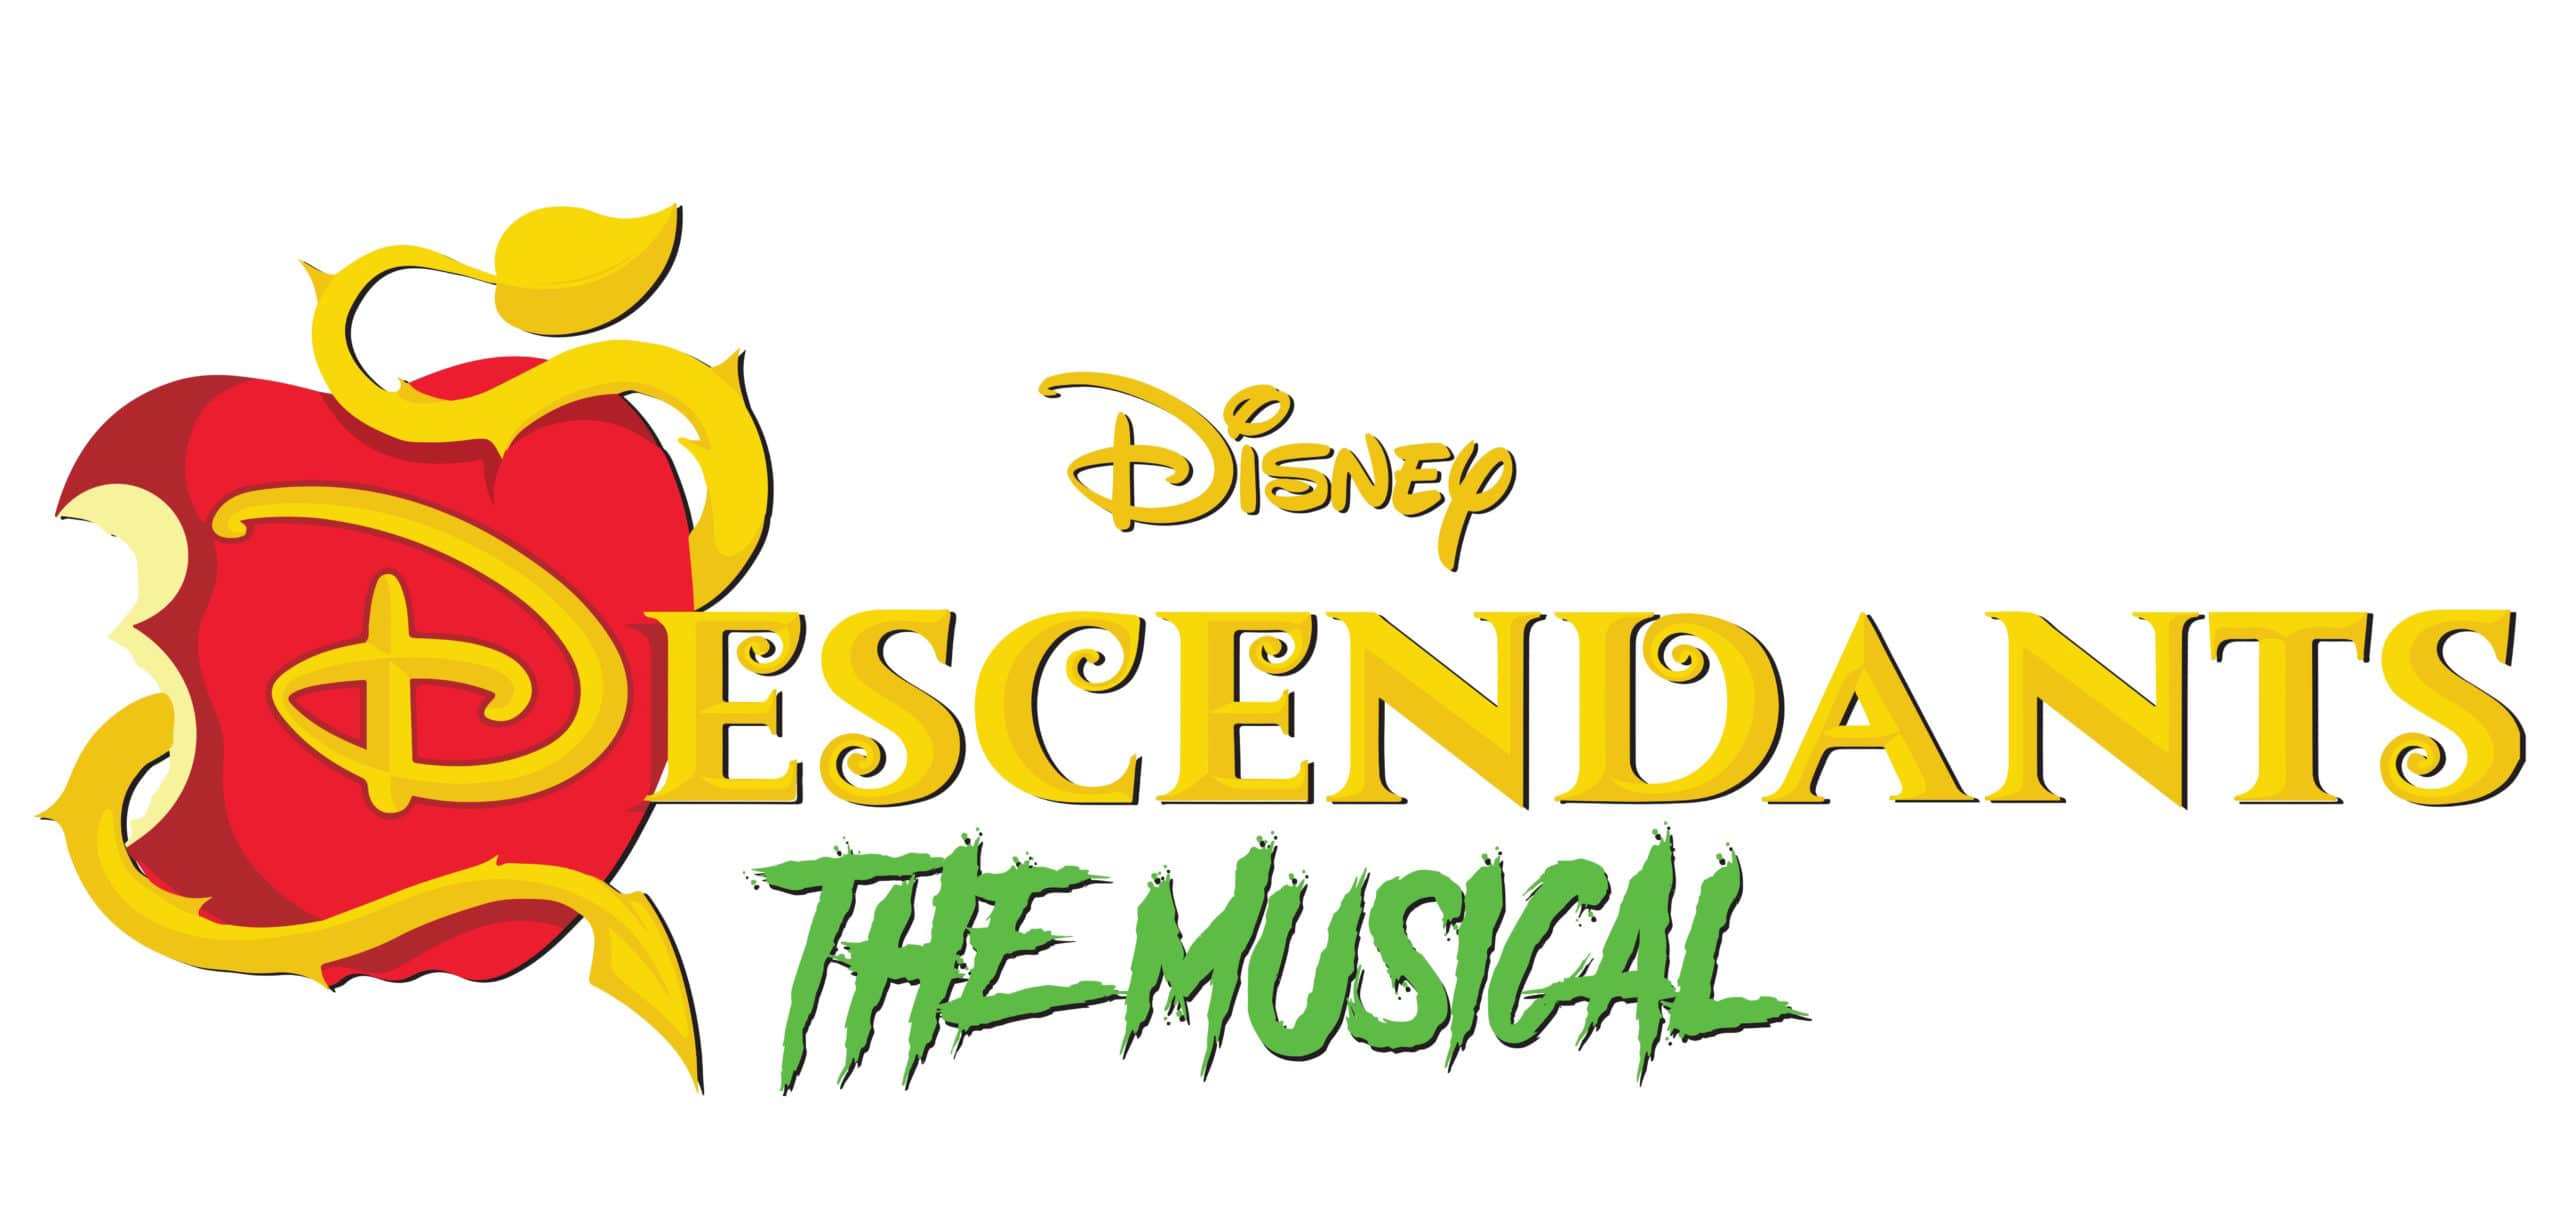 Descendants, Casa Mañana